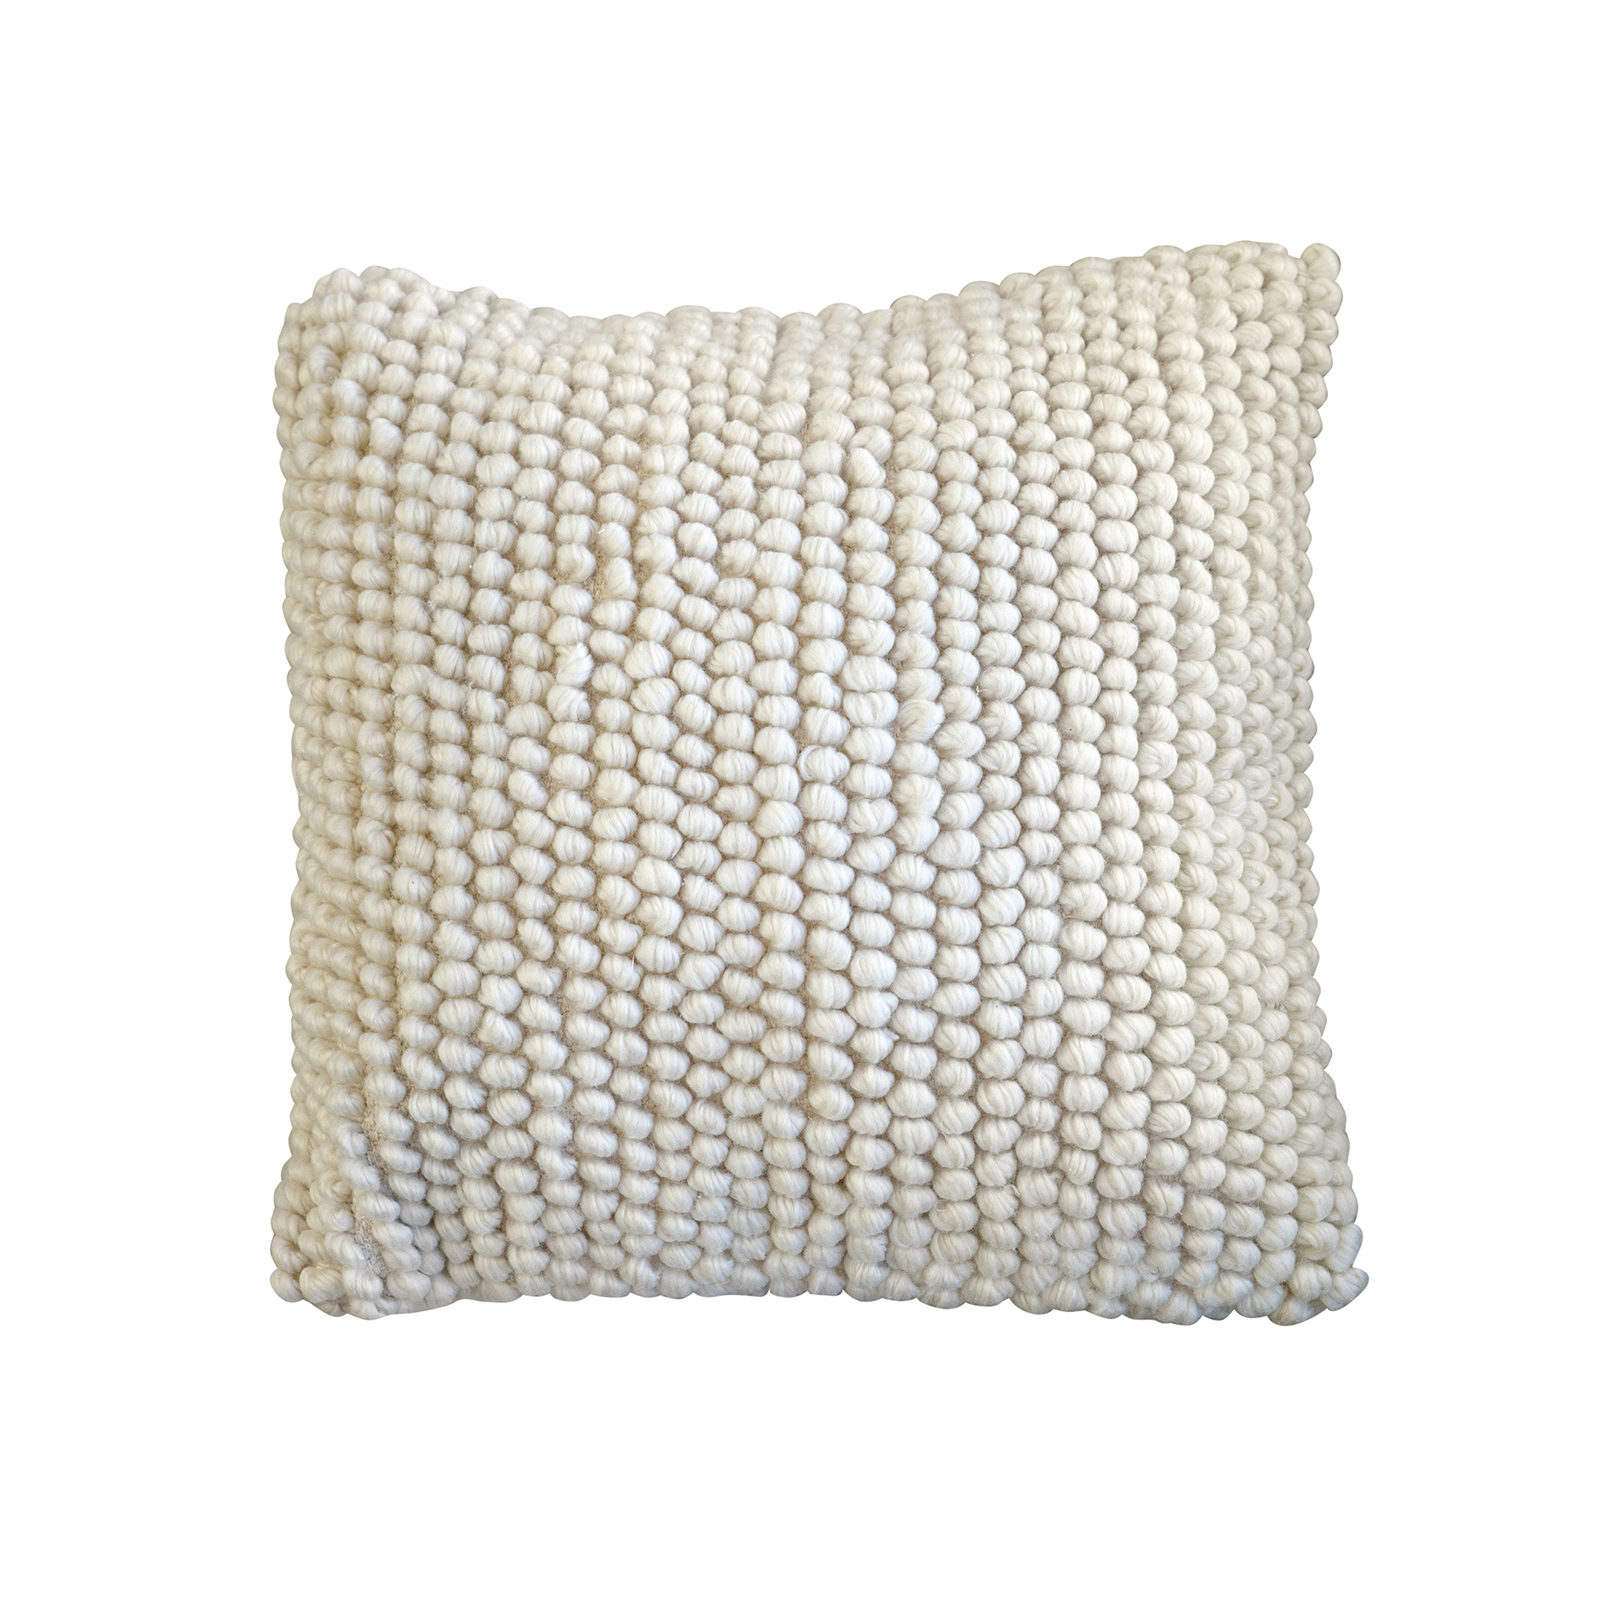 Smart Home Products 45 x 45cm Cream France Loop Cushion